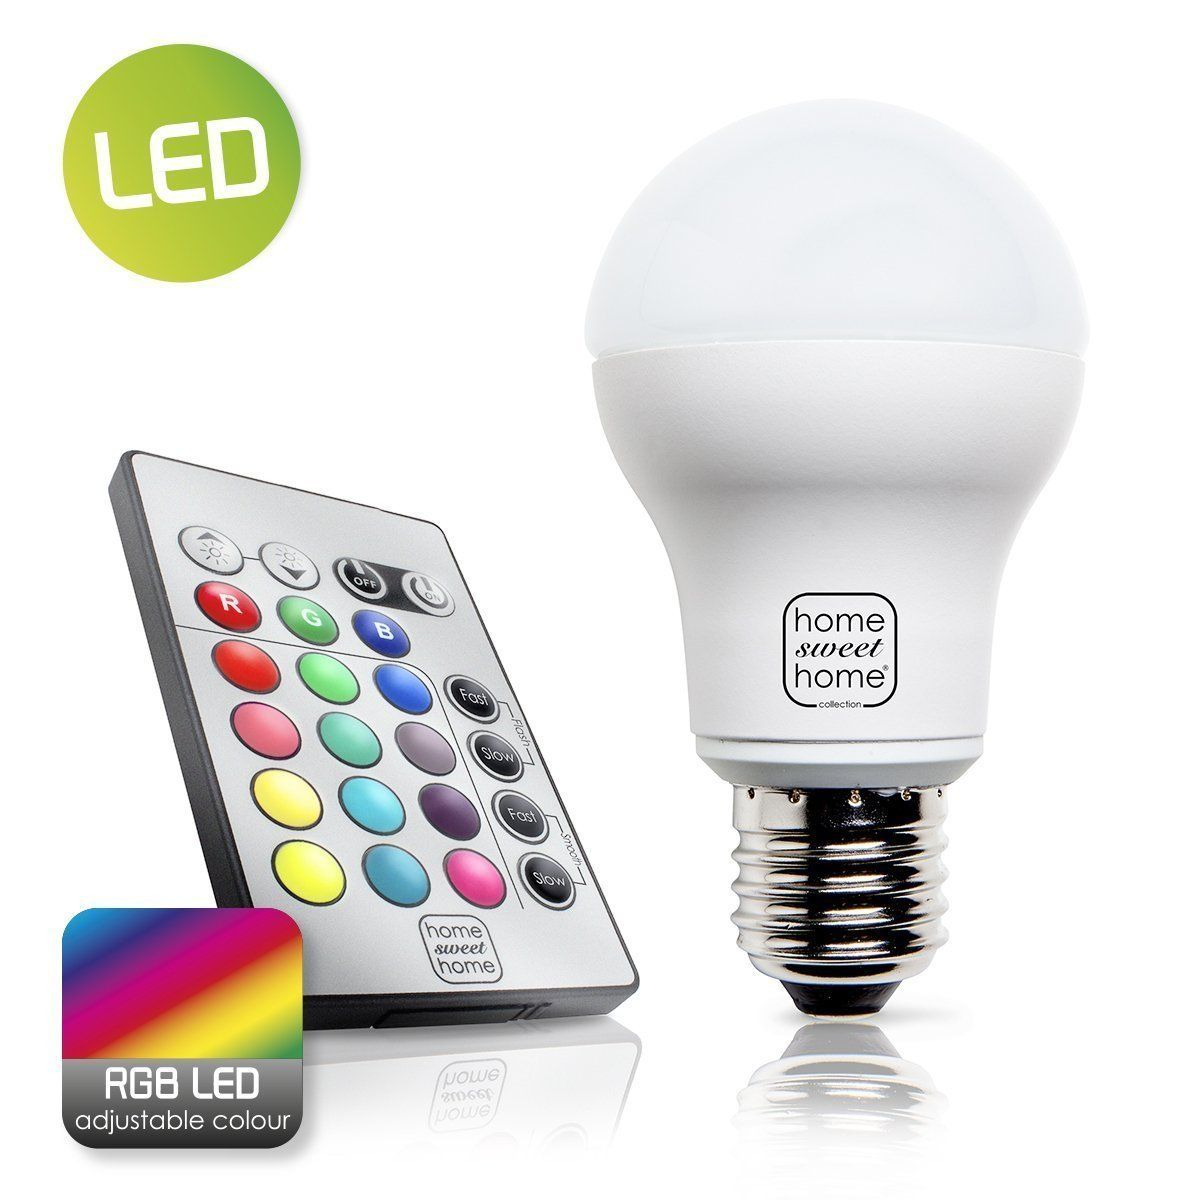 Home Sweet Home LED lamp